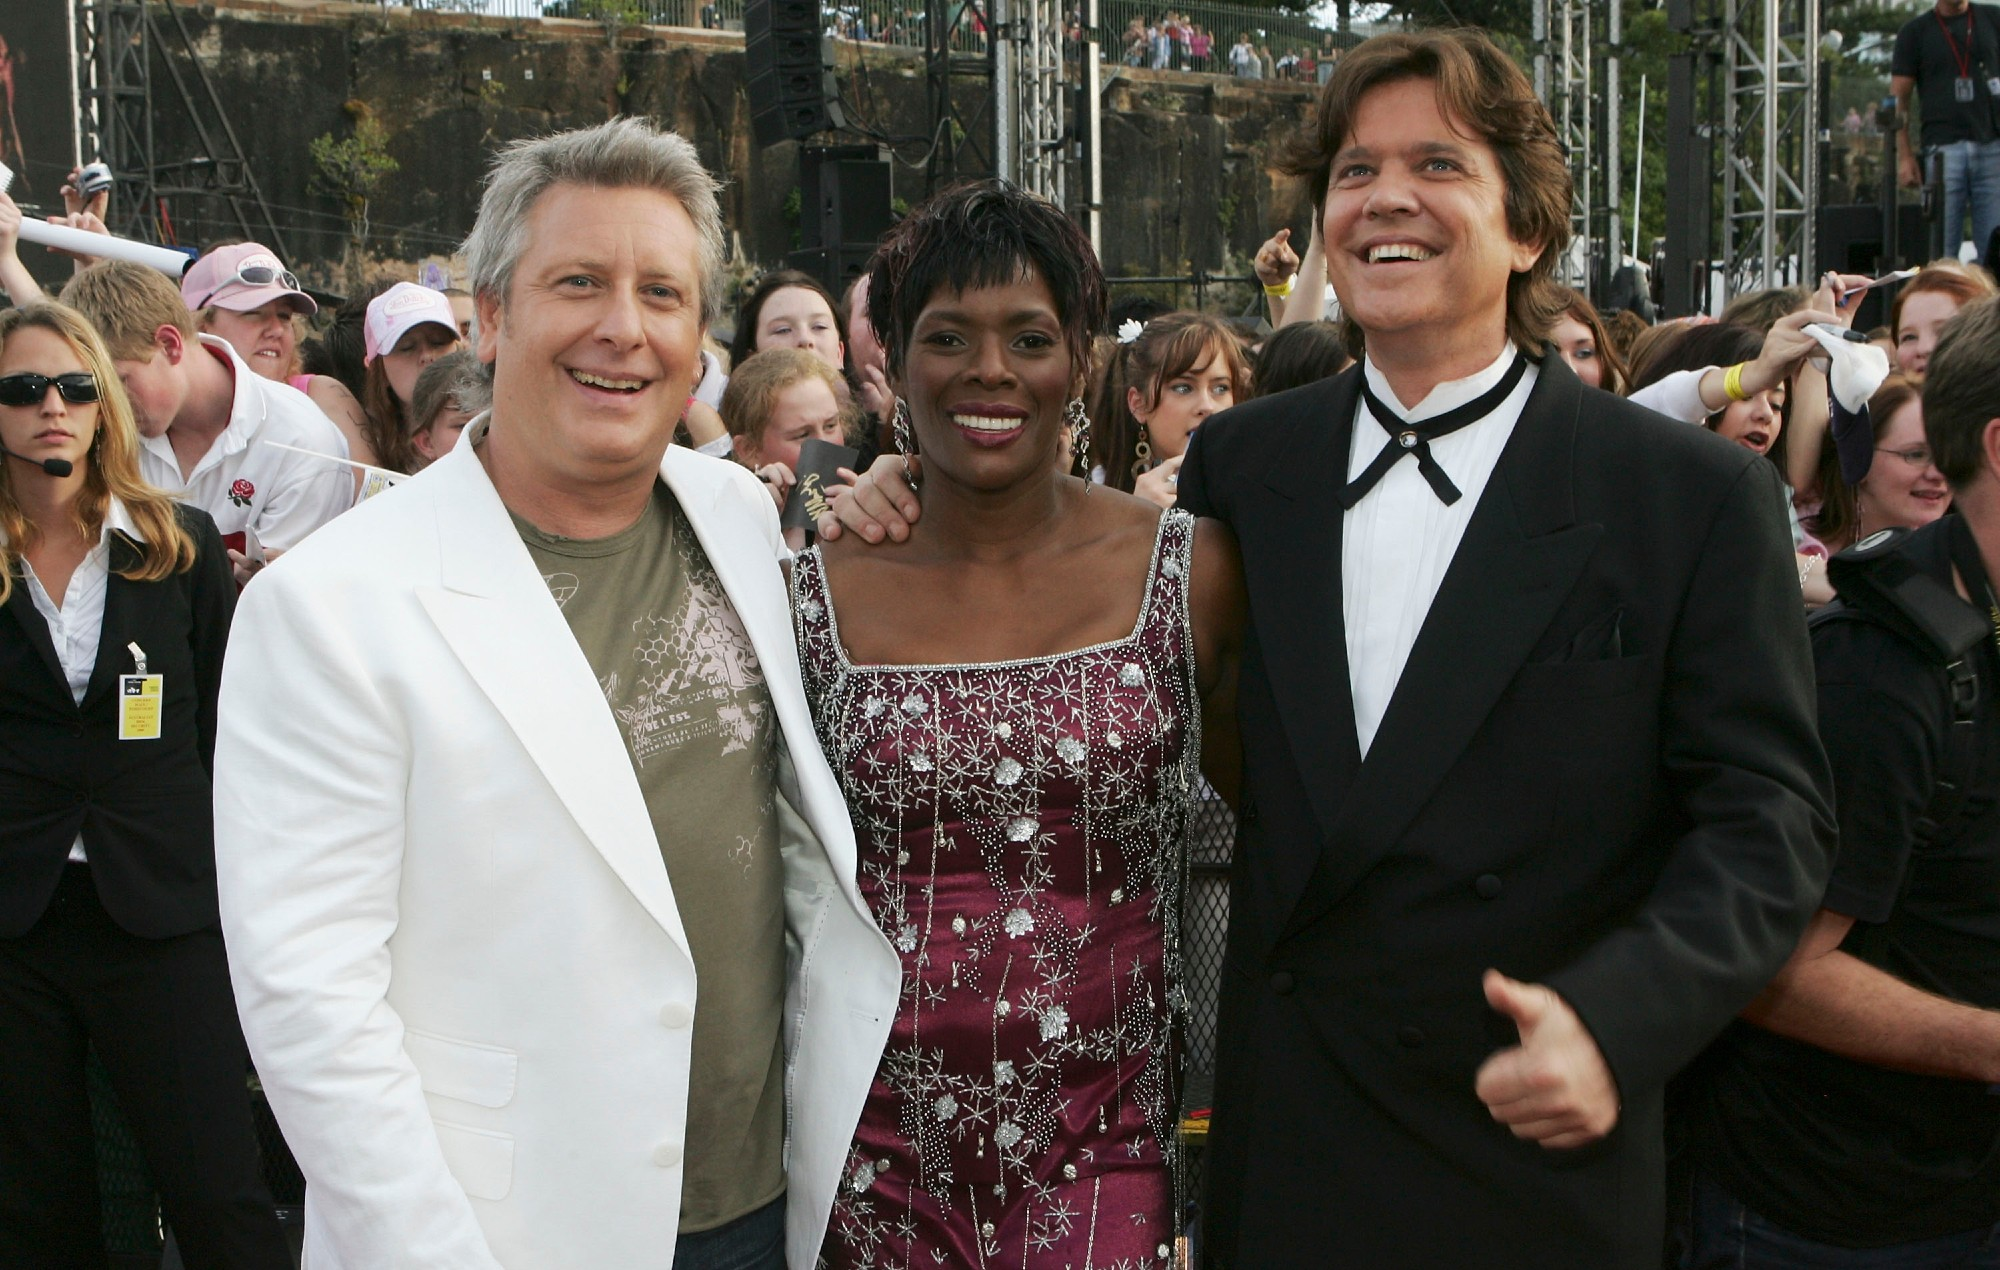 ian dicko dickson marcia hines mark holden credit getty patrick riviere